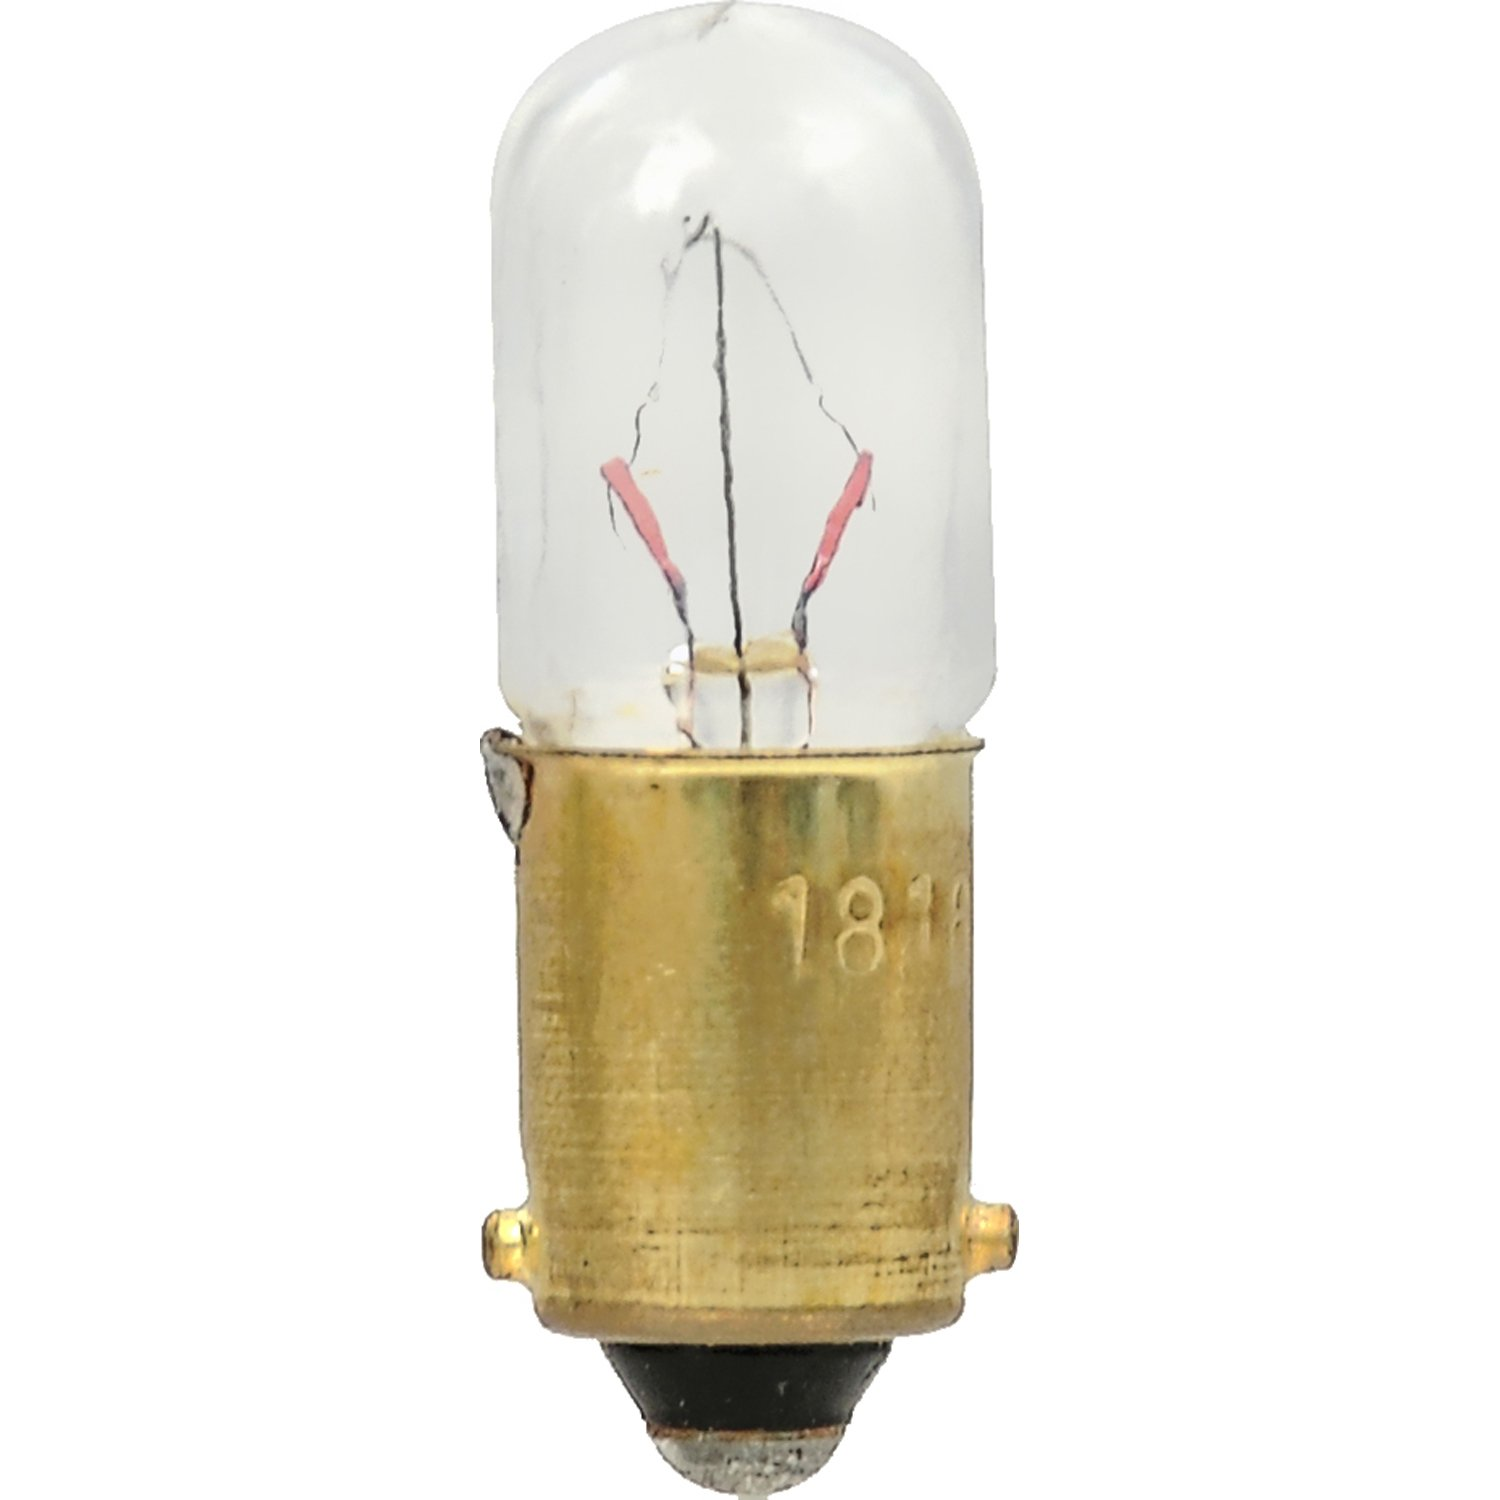 Amazon.com: SYLVANIA 1816 Basic Miniature Bulb, (Contains 10 Bulbs): Automotive